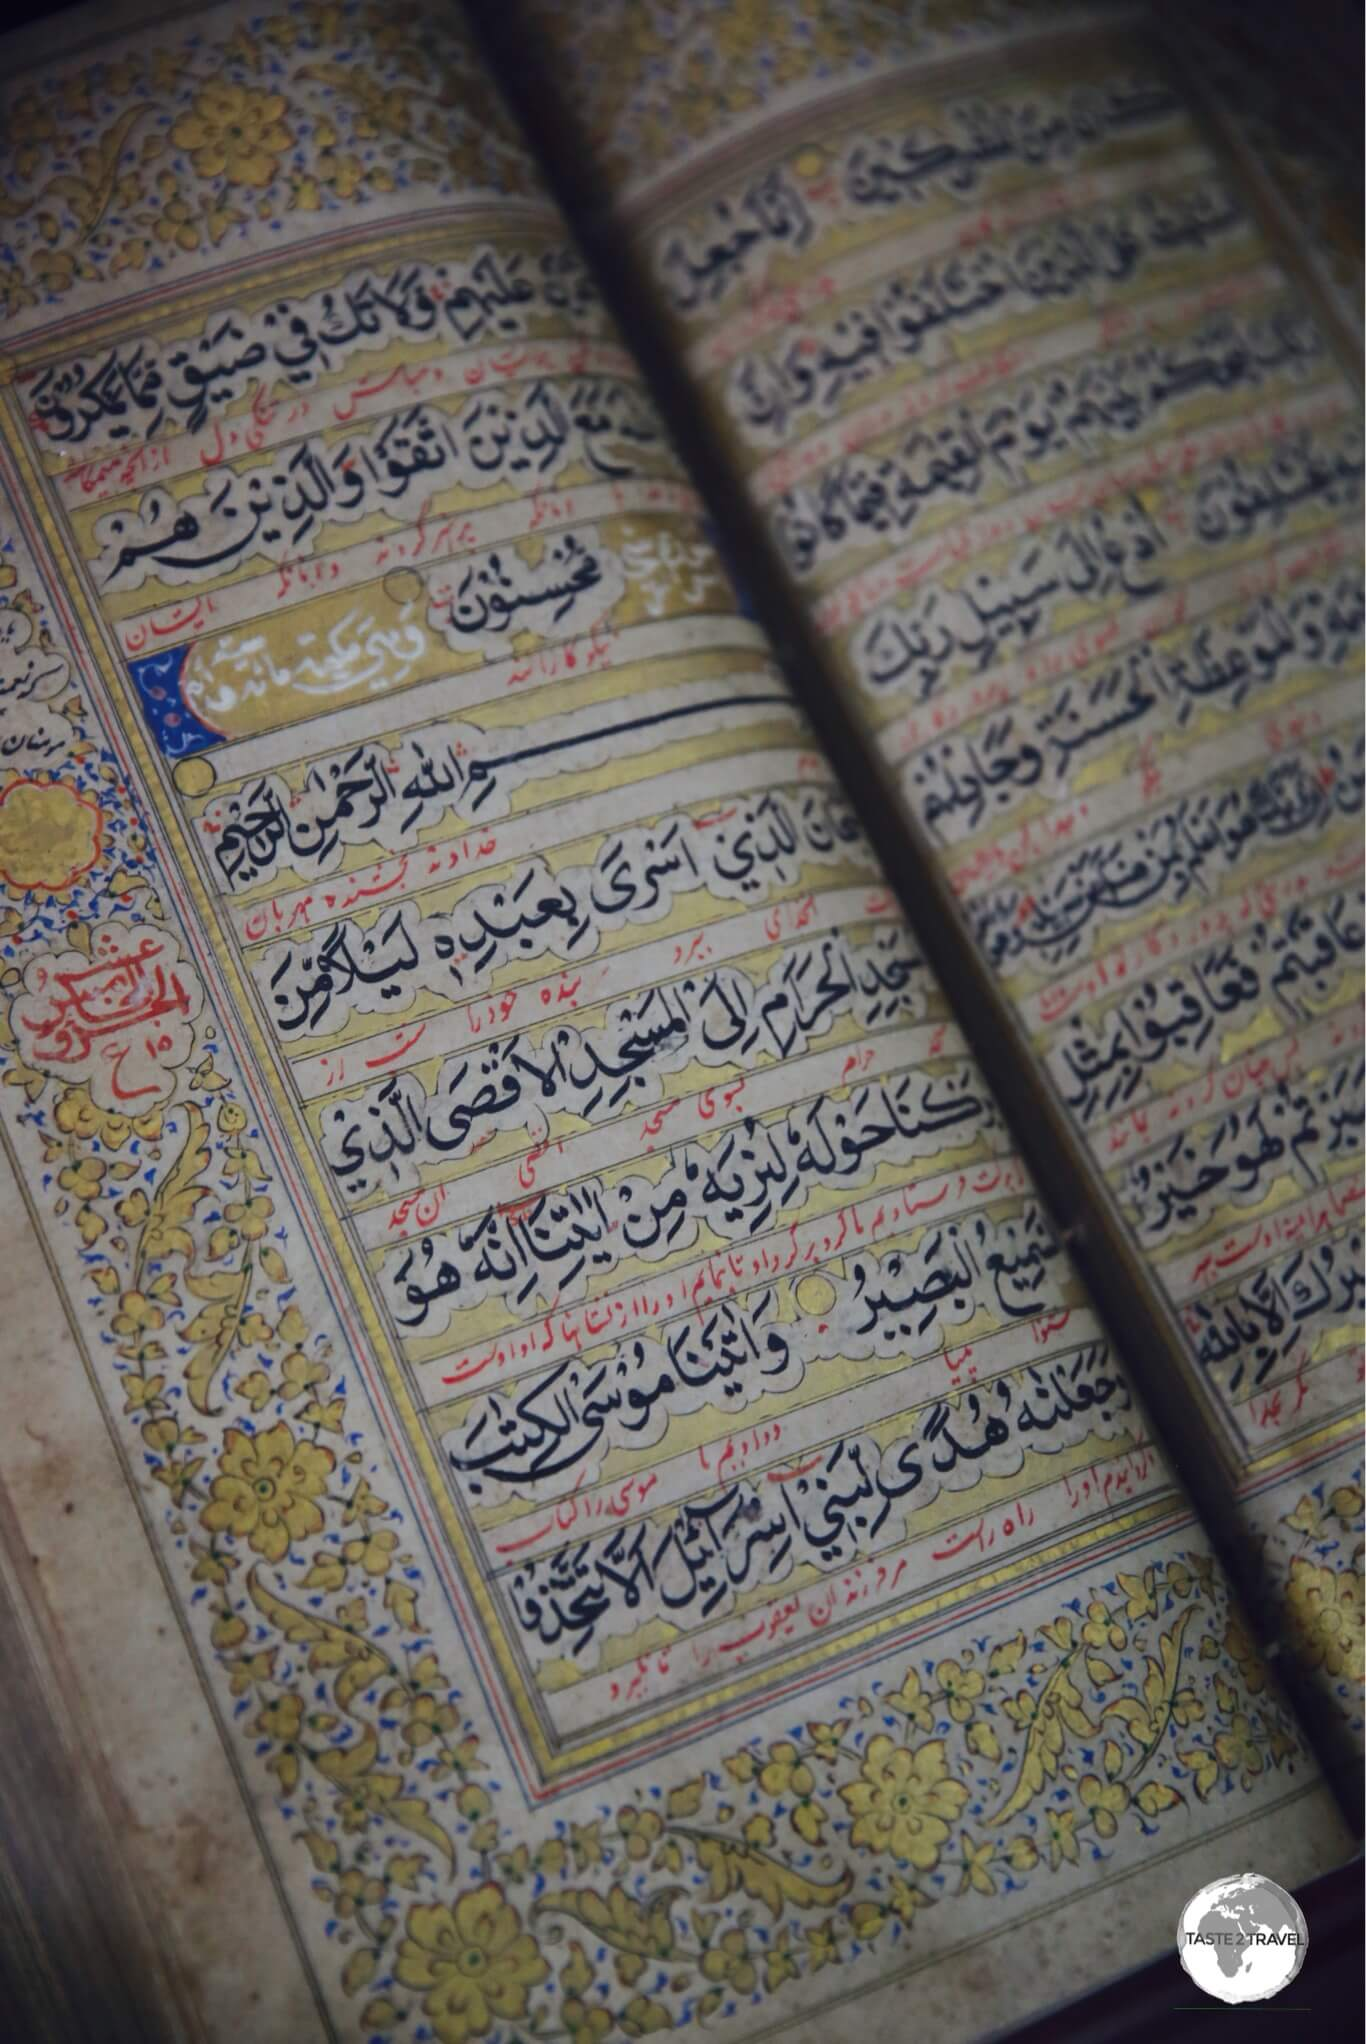 A sad sight - ancient hand-written, gold leaf, Islamic manuscripts rotting away in the humid heat.